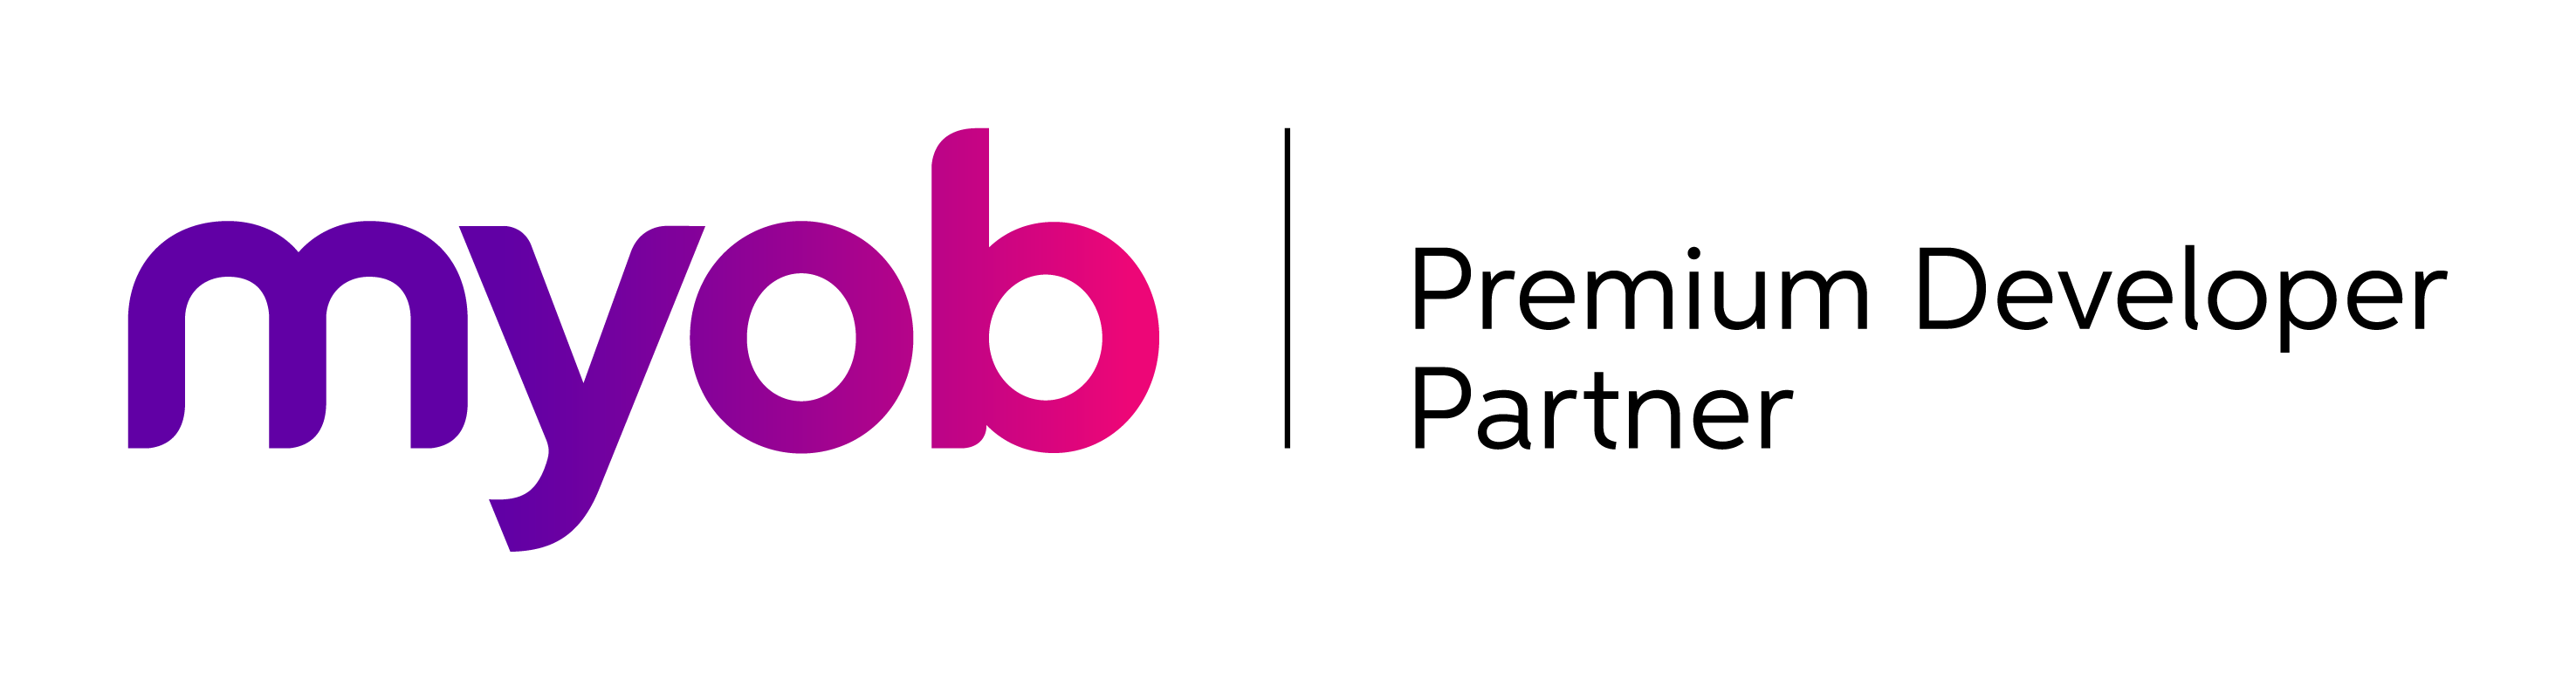 <H1> MYOB Developer Partner</H1>